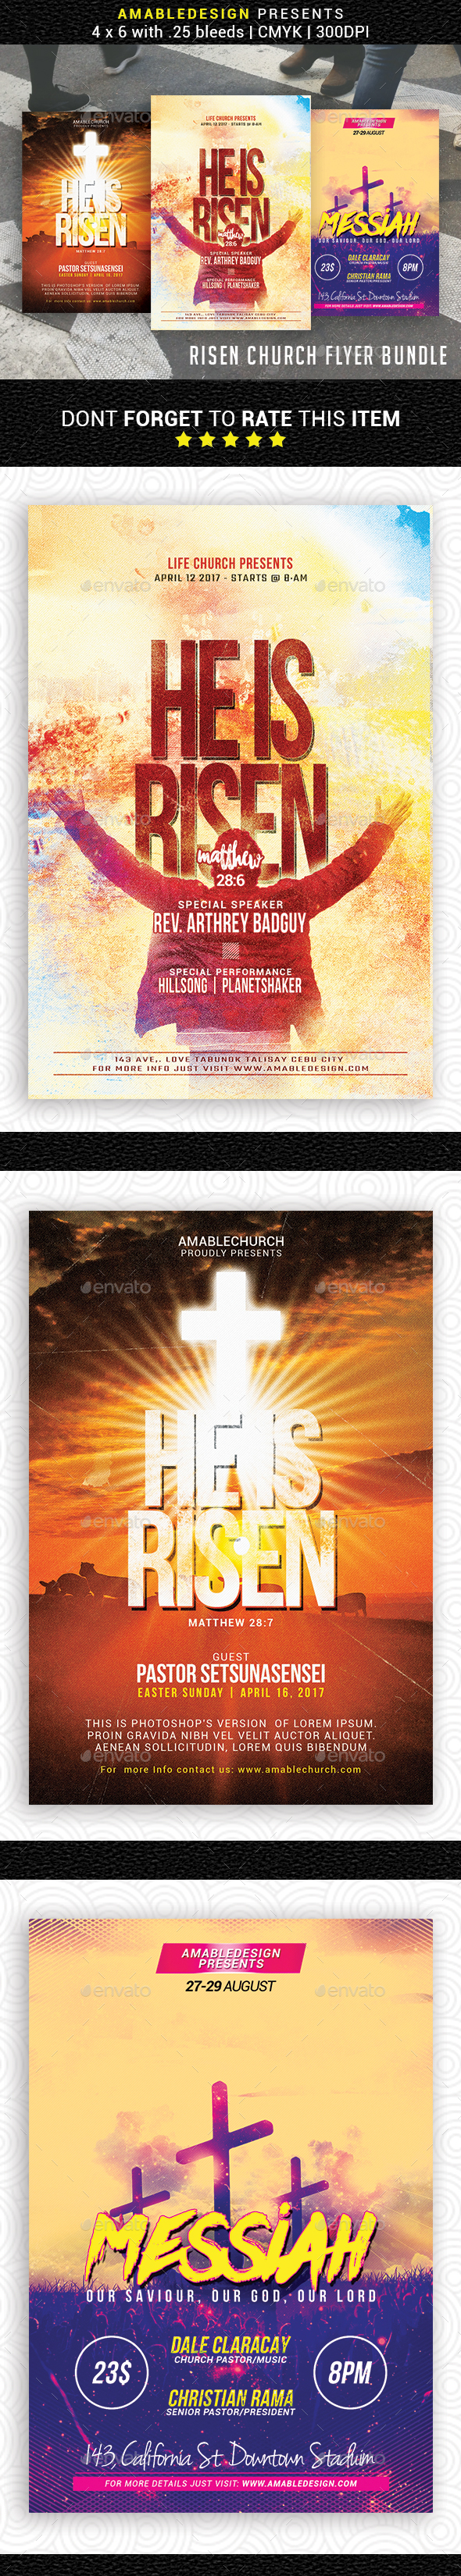 3 in 1 Risen Church Flyer/Poster Bundle - Church Flyers